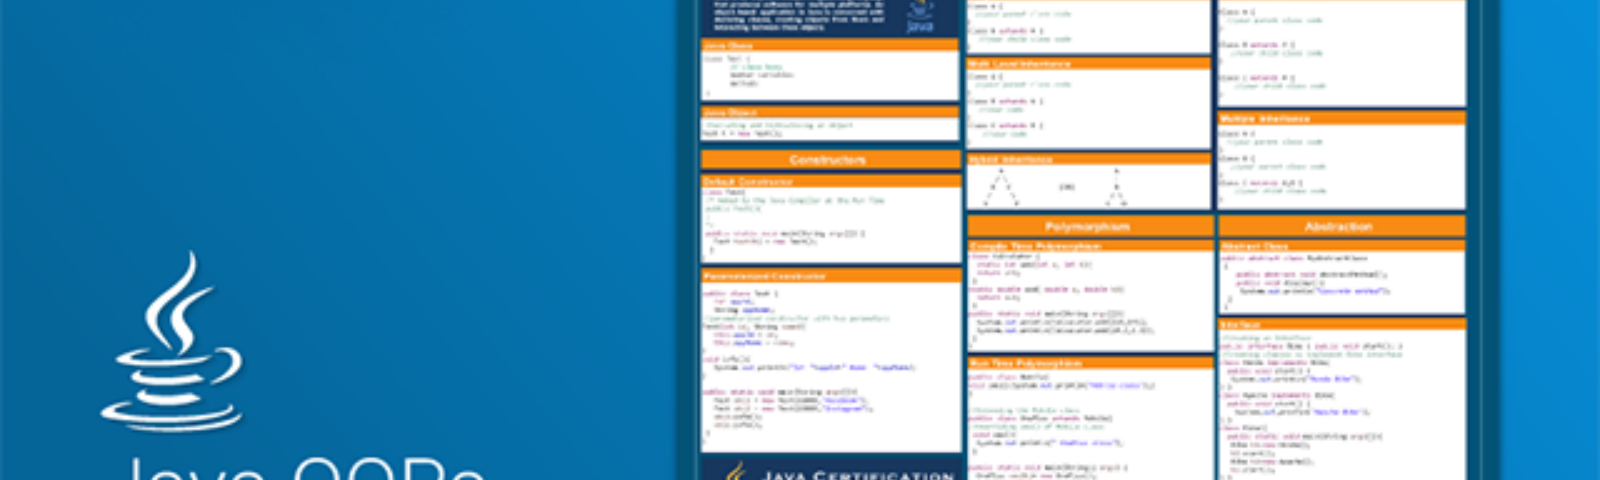 Java OOP Cheat Sheet | Object Oriented Programming Concept